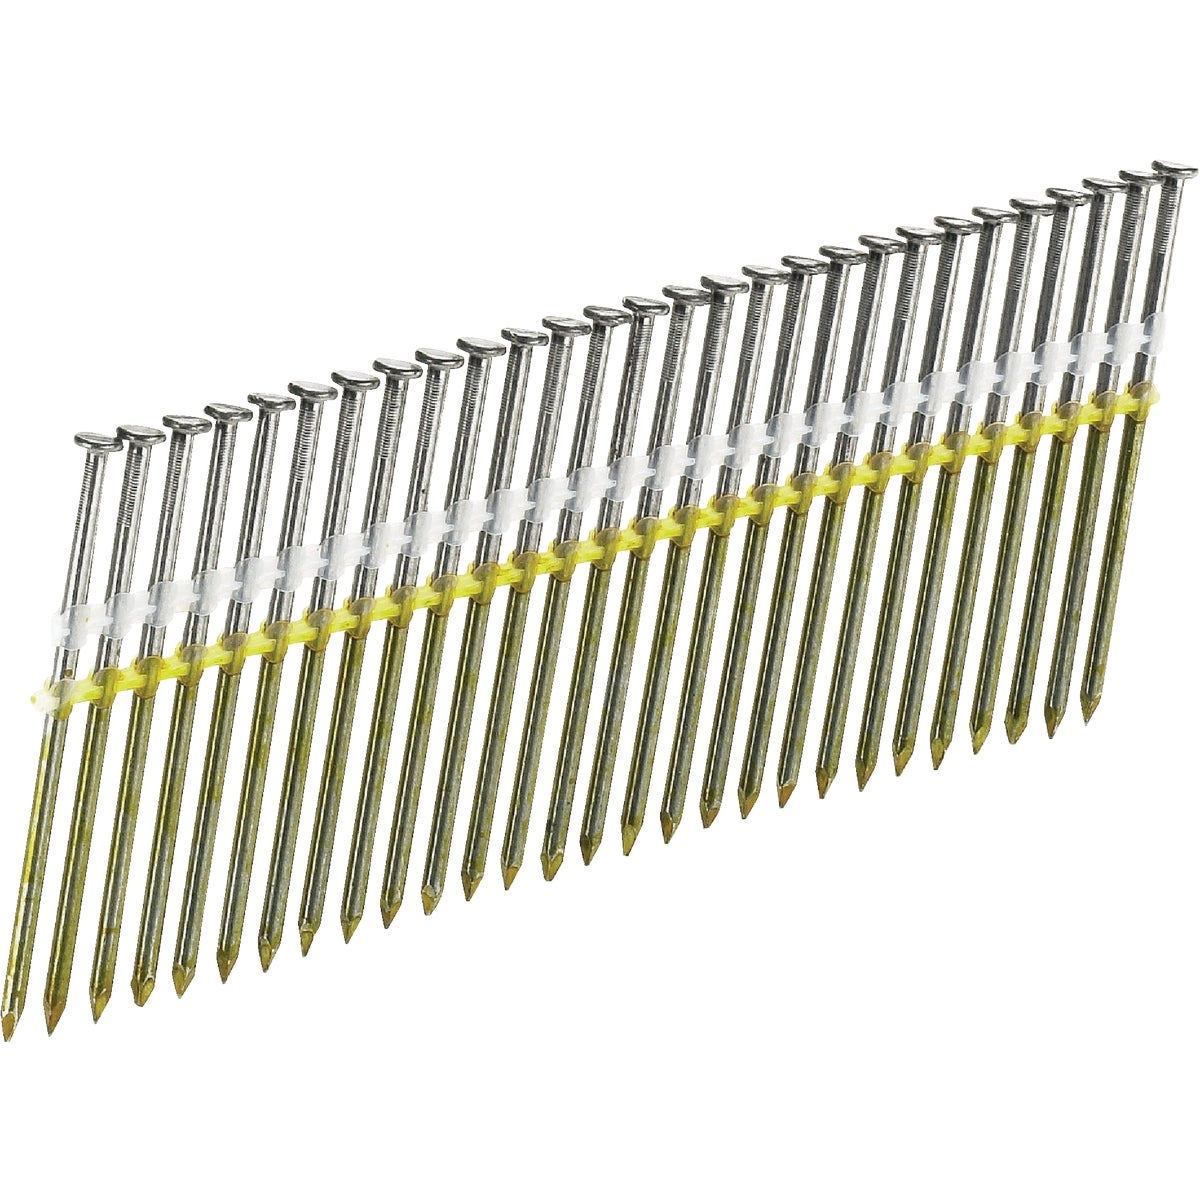 "2-1/2"" FRAMING NAIL - GD25AABSN by Senco Brands"